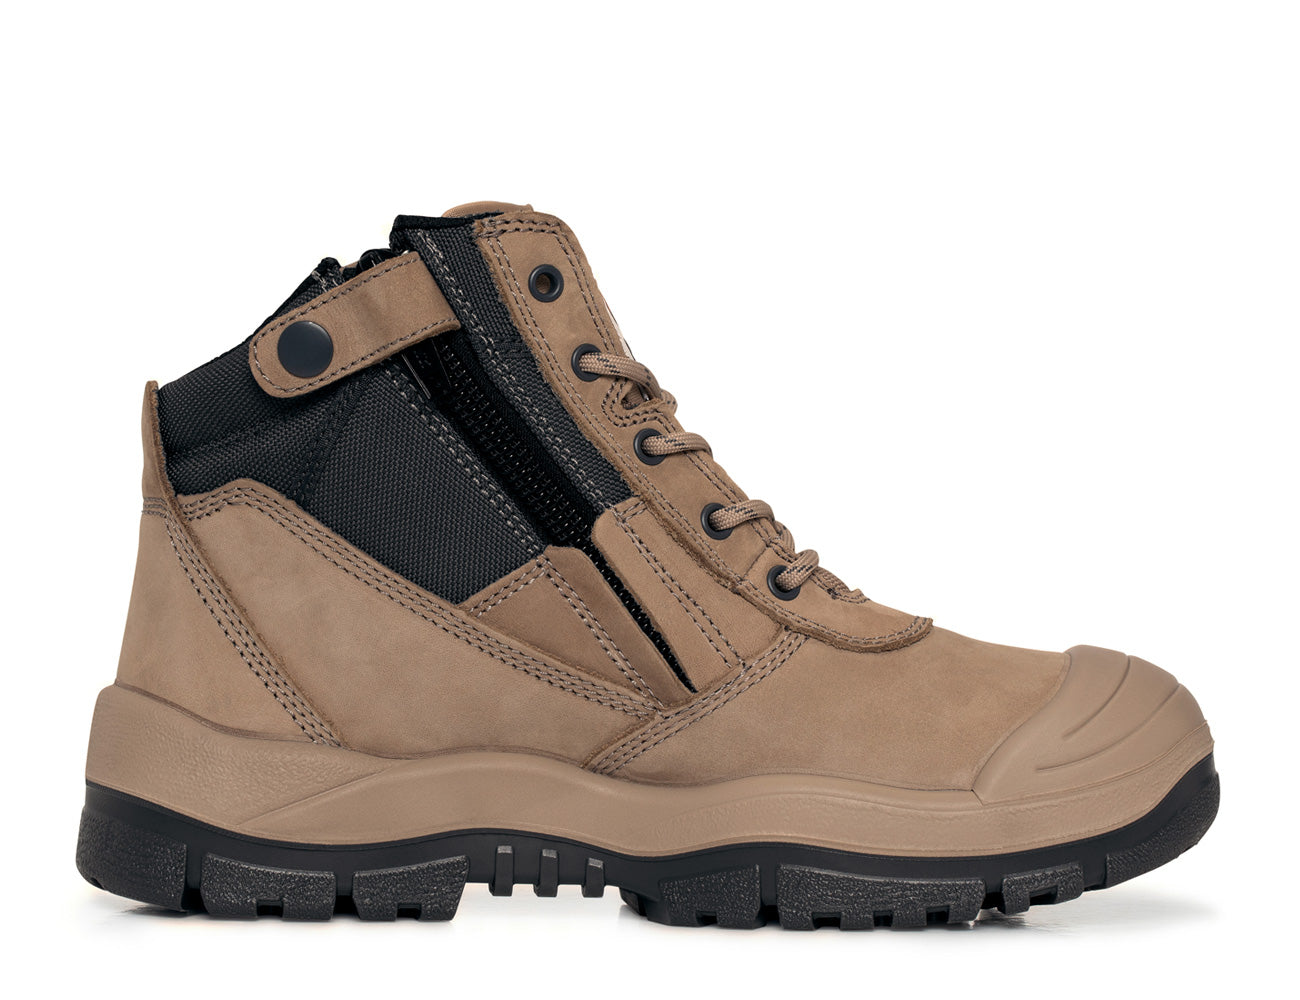 Mongrel Zip-Sider Safety Boots with Scuff Cap - 461060